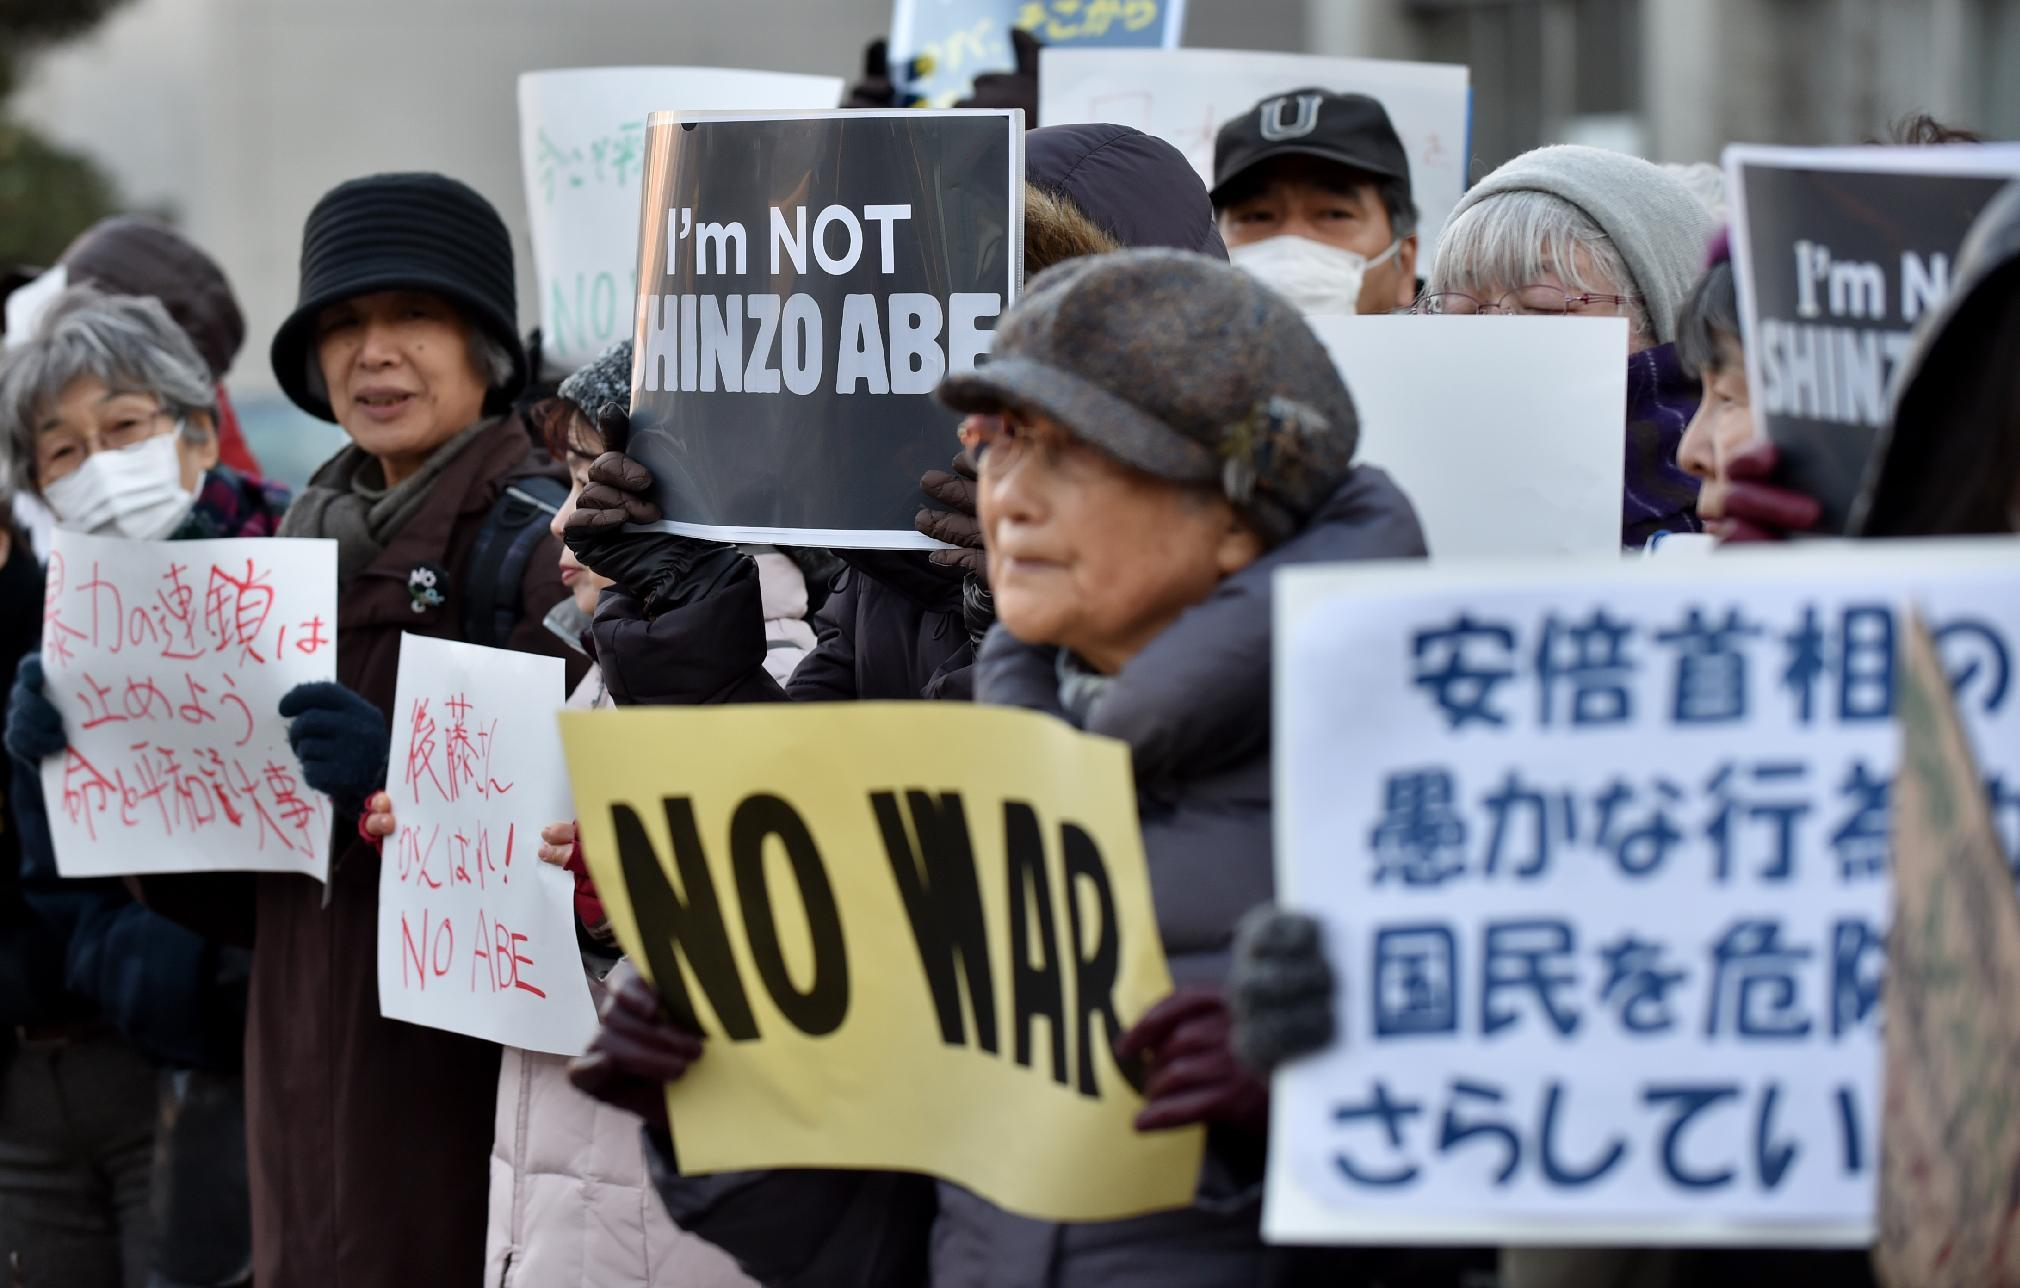 Hostage crisis poses stark test for pacifist Japan